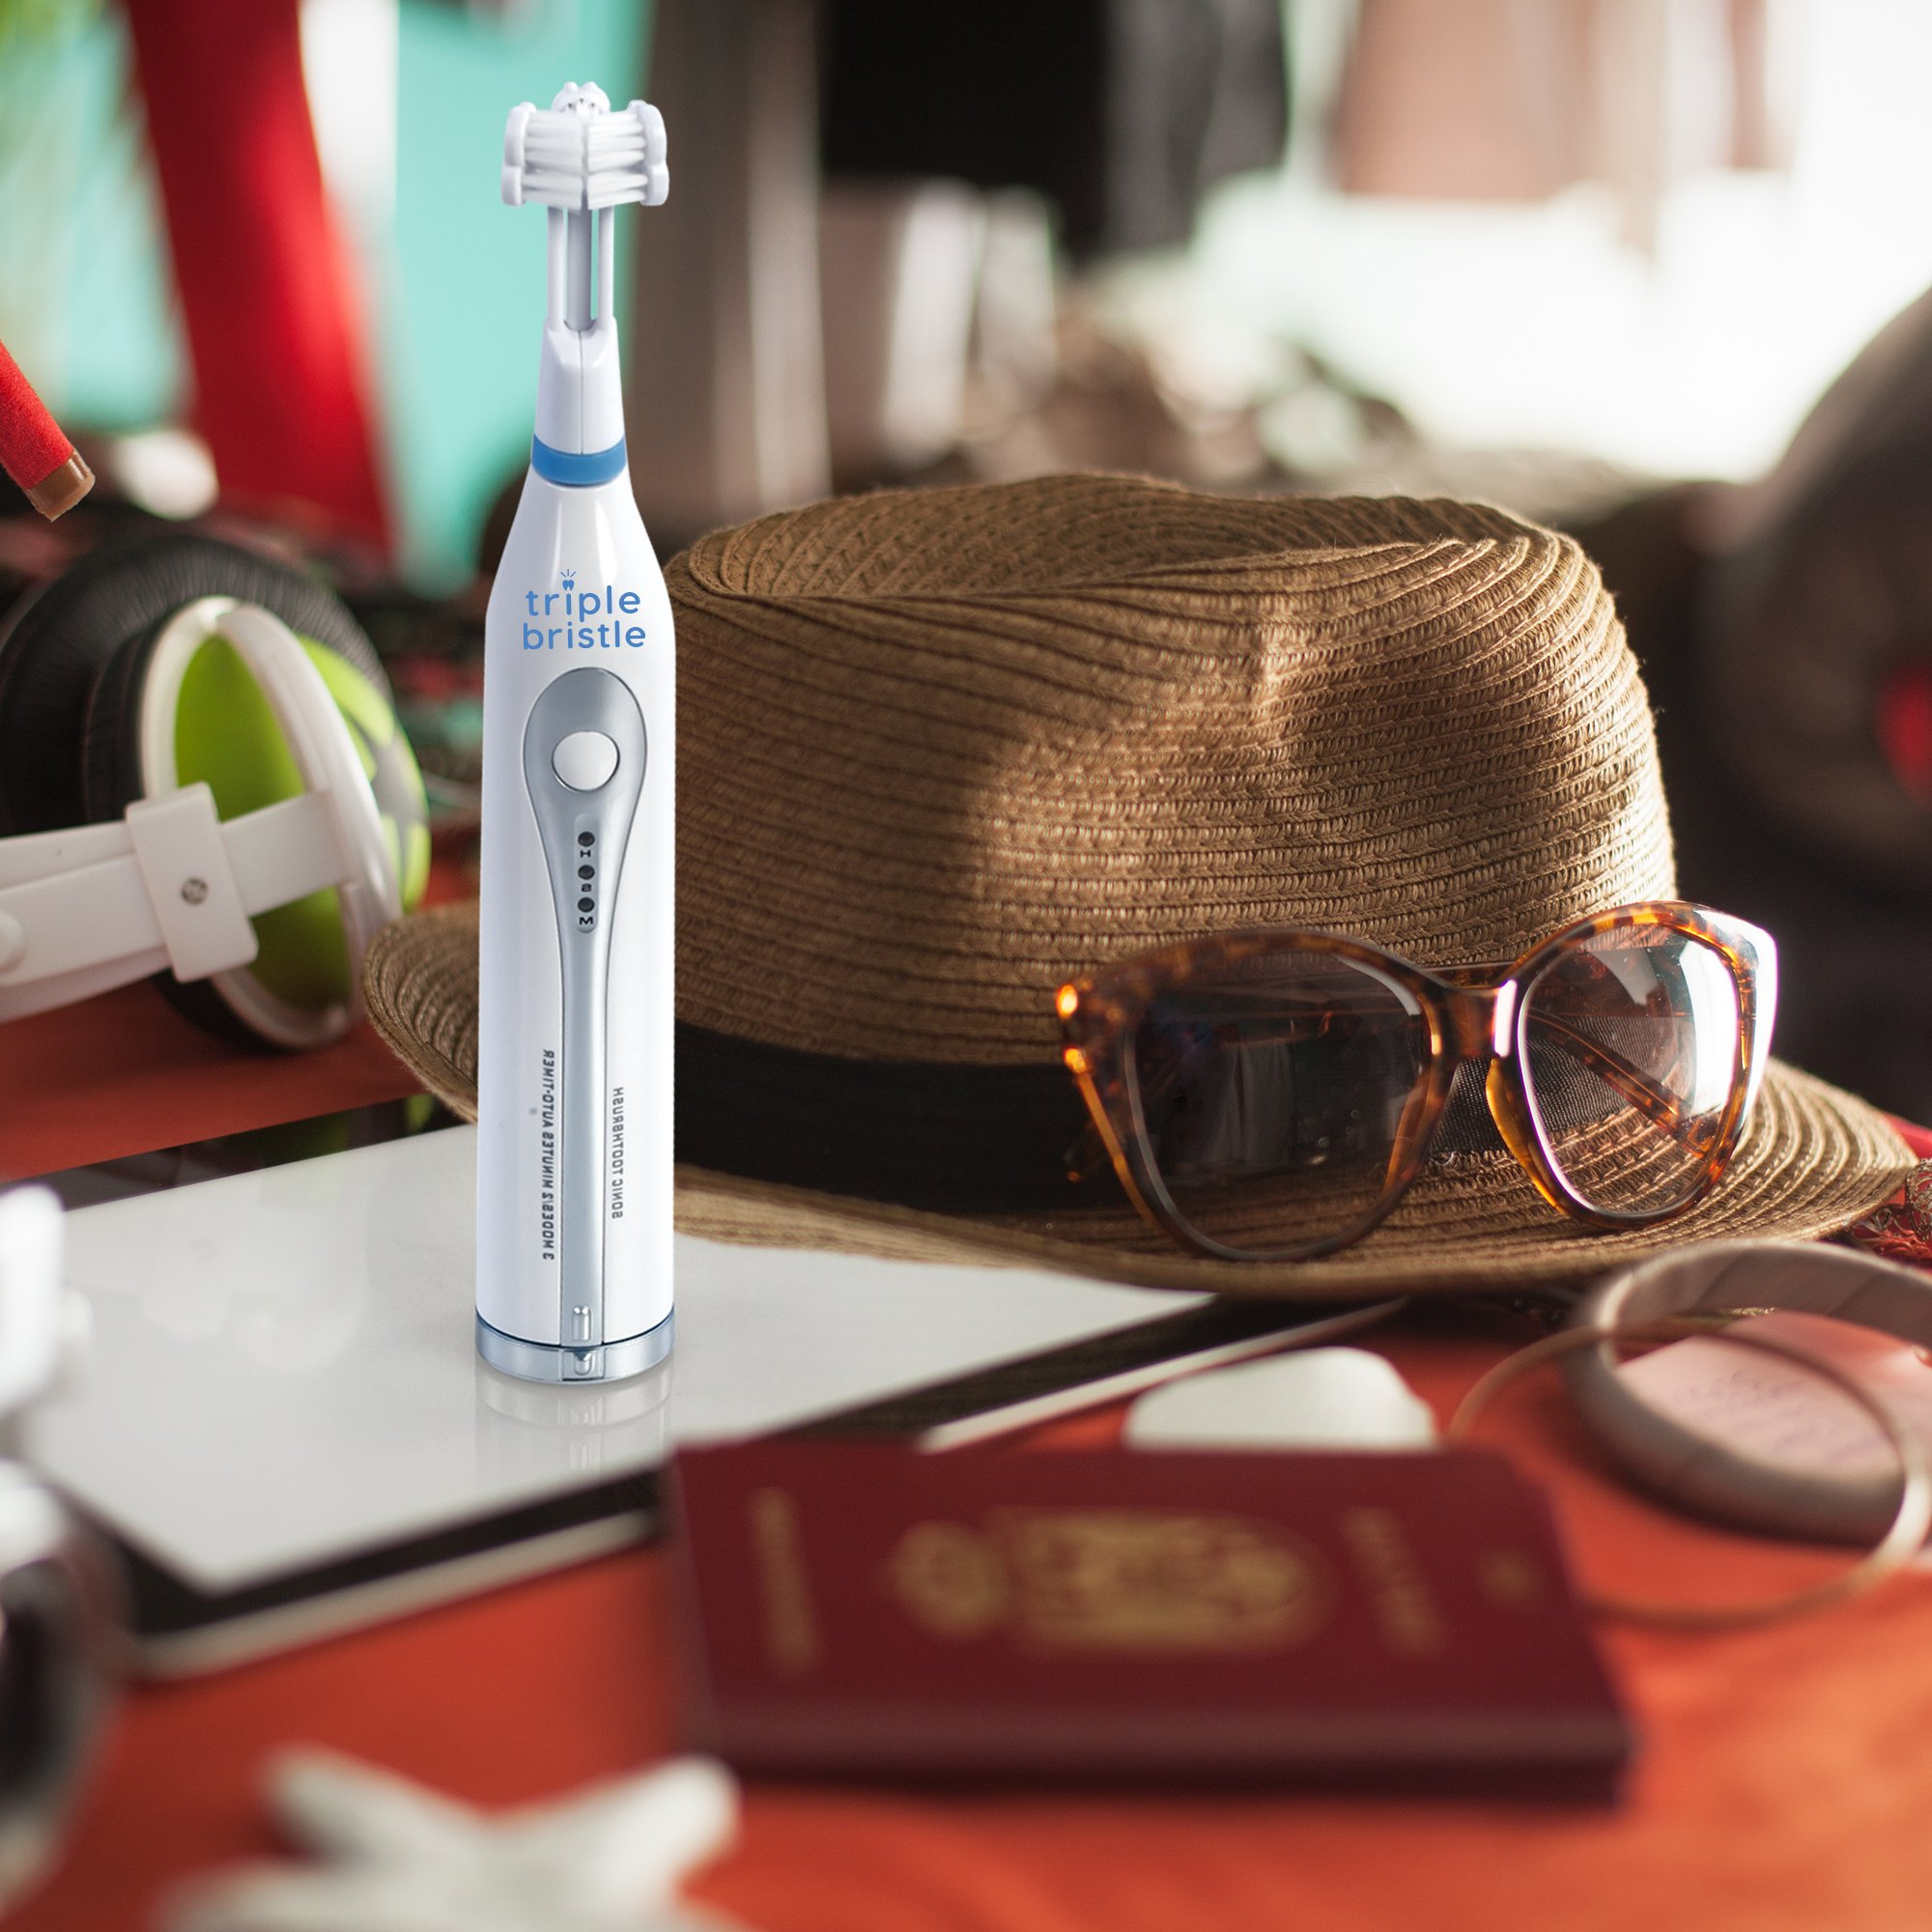 Triple Bristle Go Travel Sonic Toothbrush - AA Battery Charged, Perfect For On The Go Life Style - Great for camping, sleep overs, office, traveling, gym or in a Urt in Utah. Where will your Go, go? by Triple Bristle (Image #4)